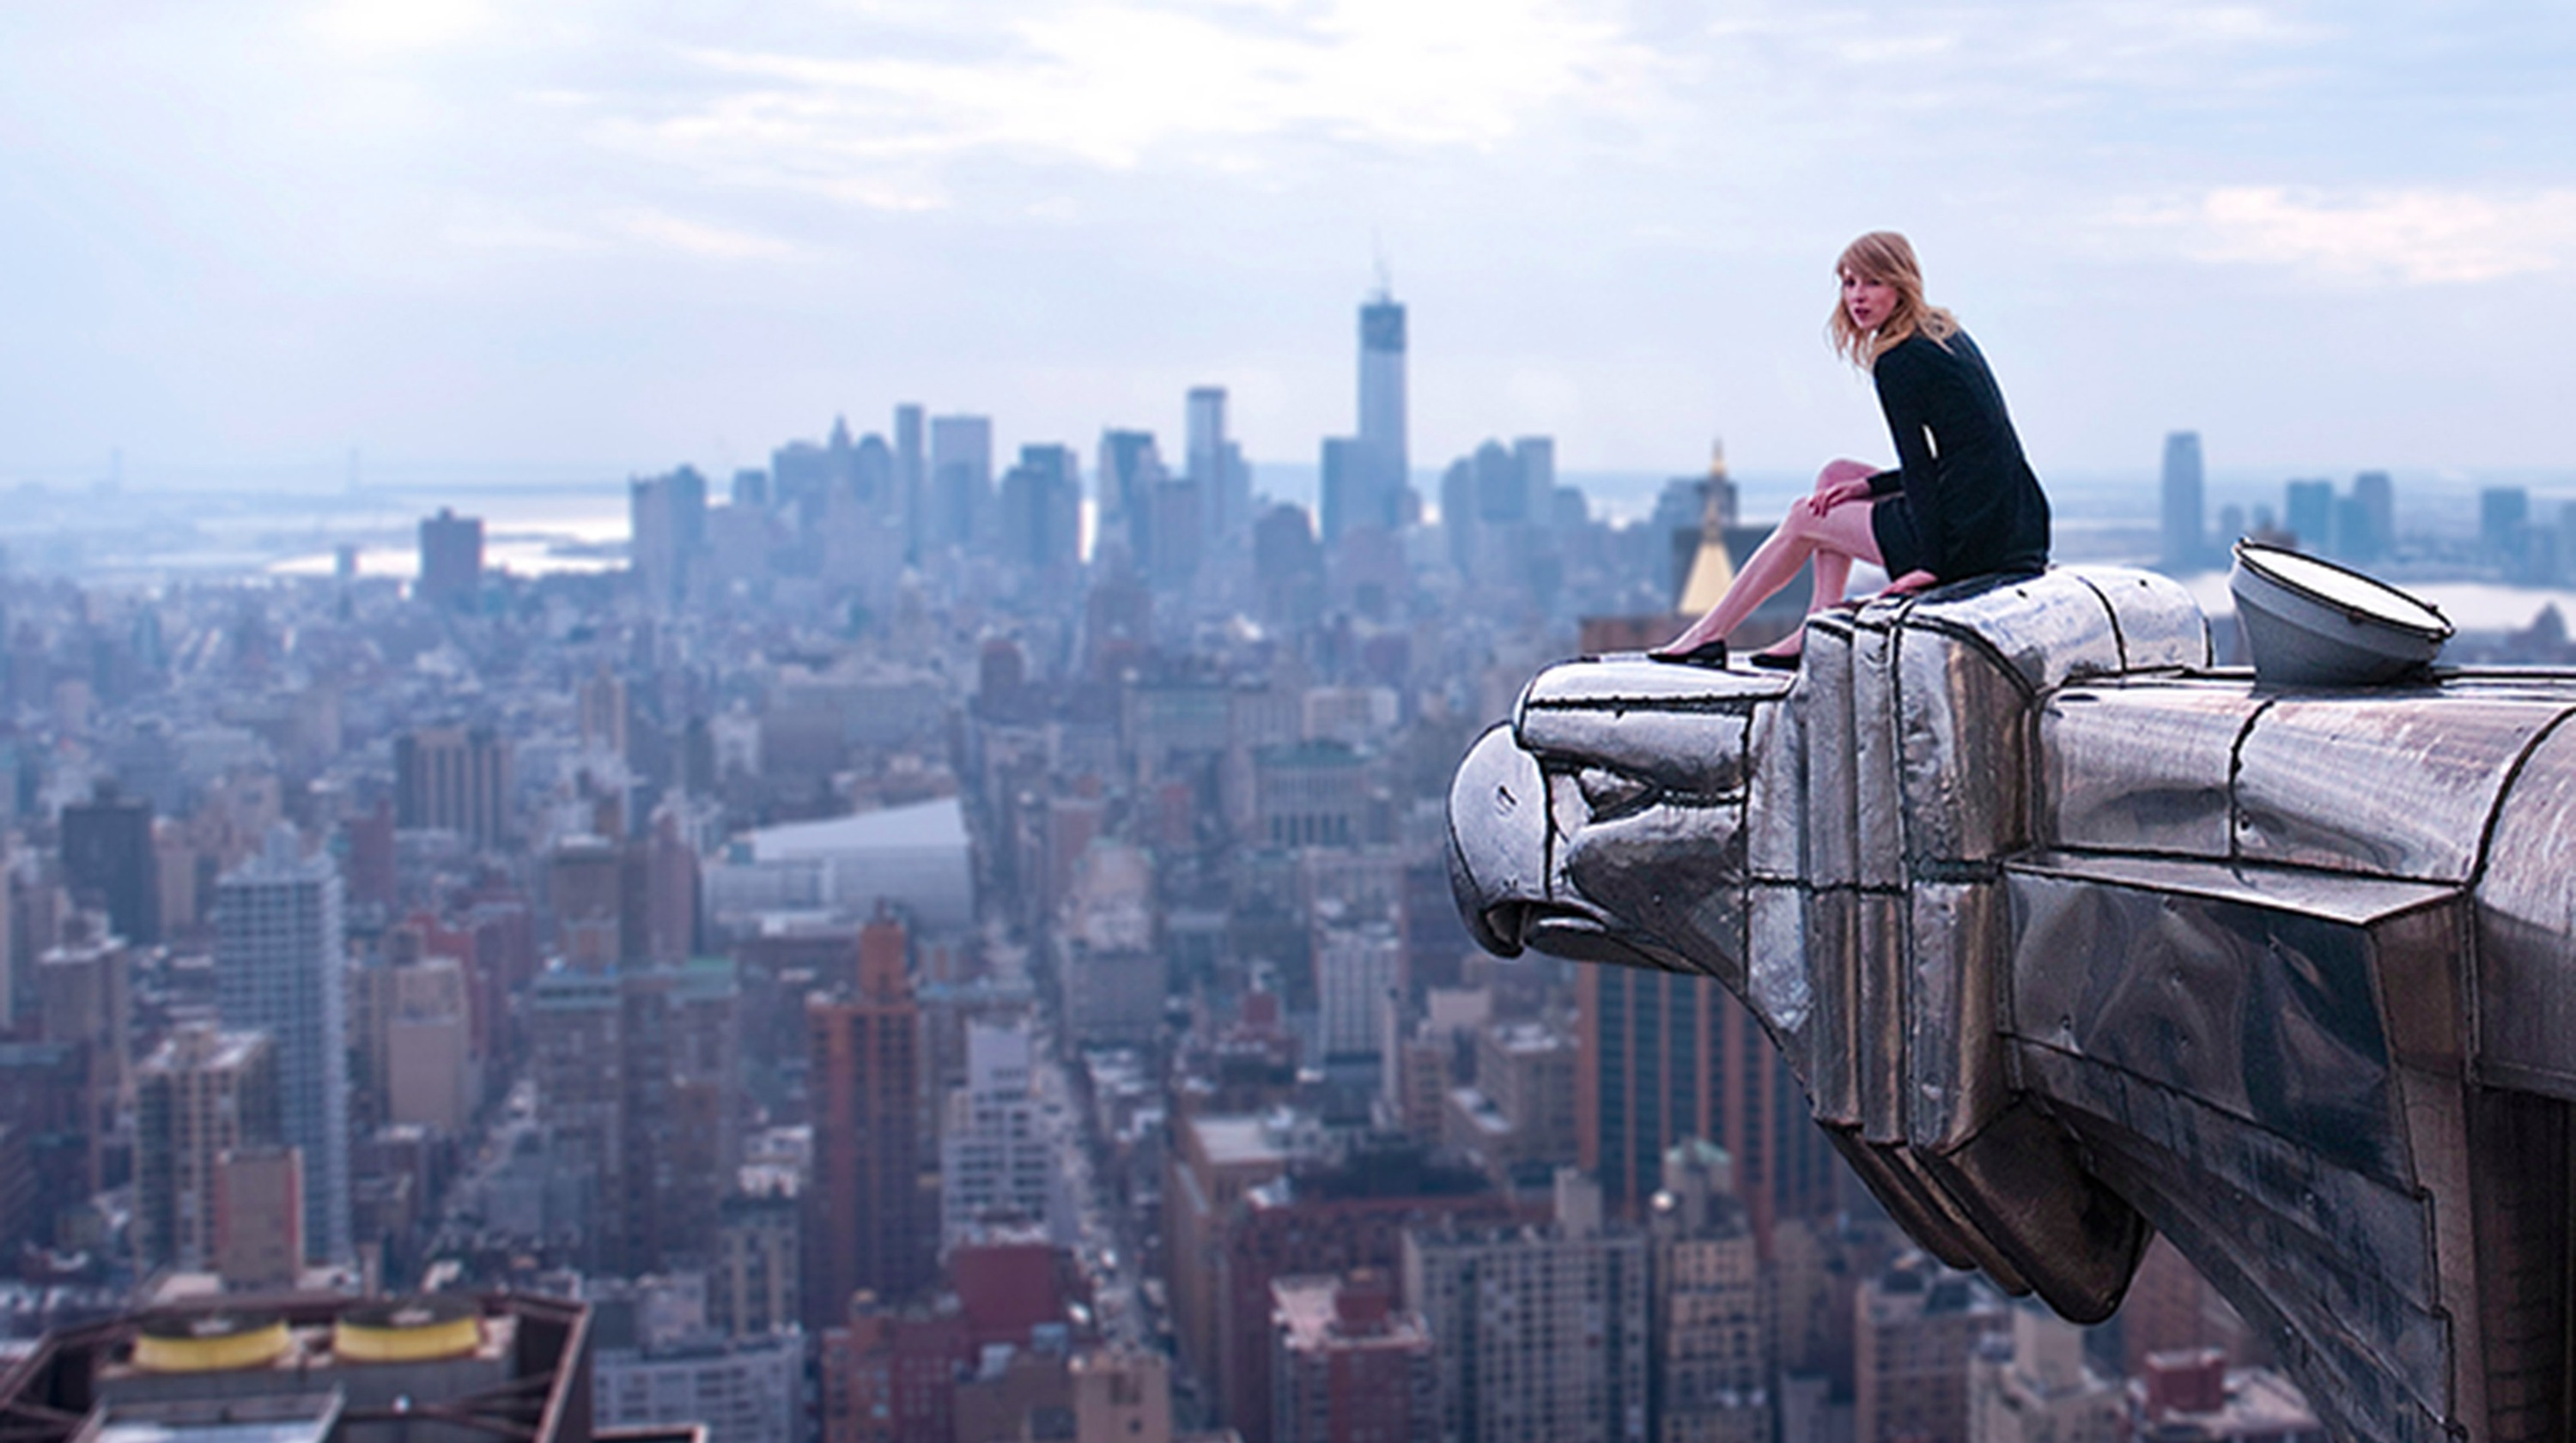 Daredevil Hartlepool Photographer Reaching New Heights